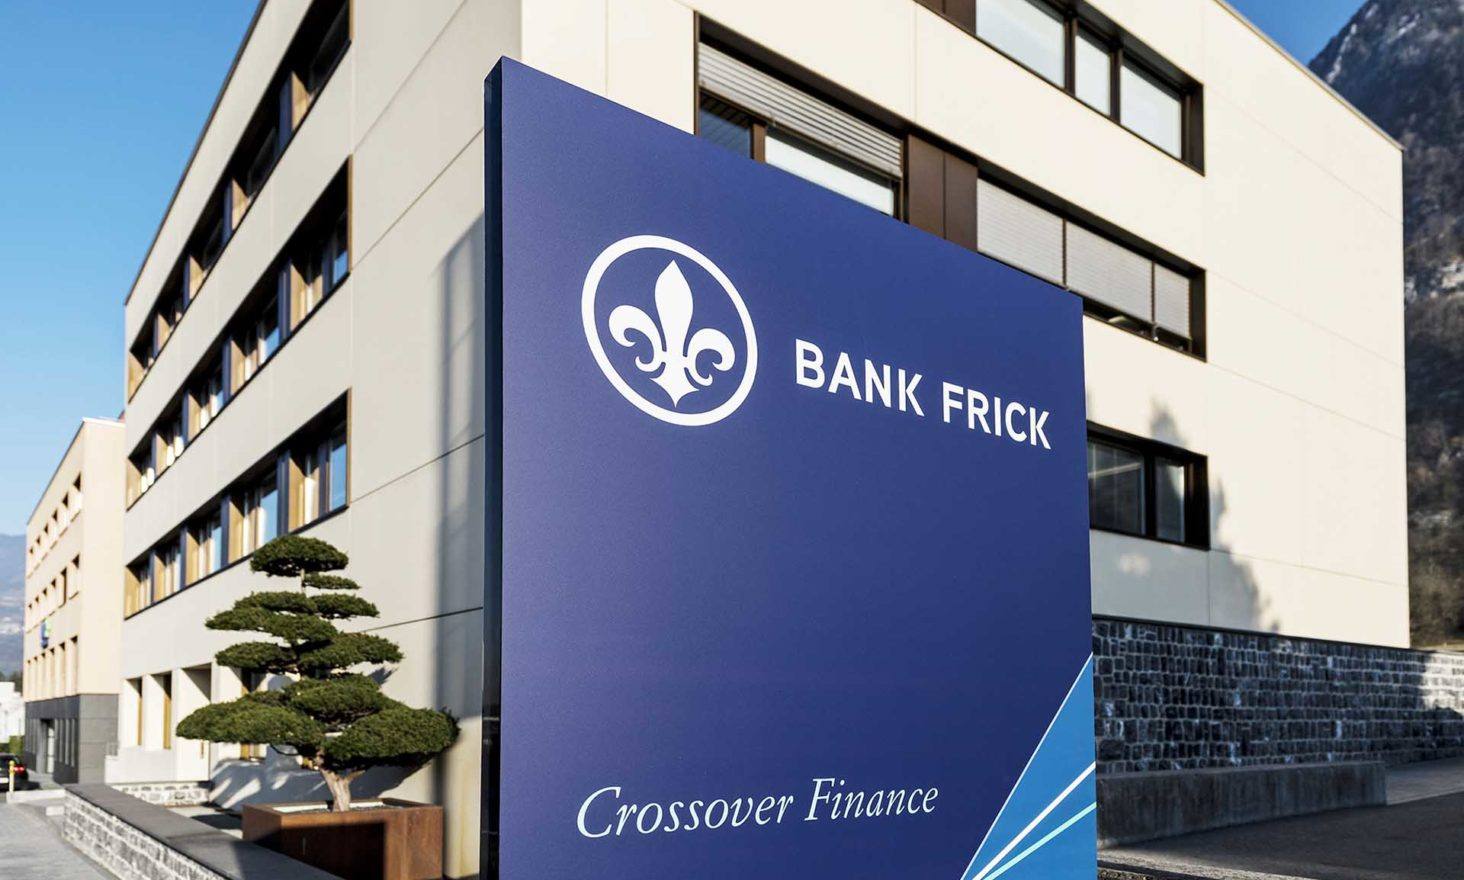 Liechtenstein's Bank Frick is Offering Cryptocurrency Investments and Cold Storage